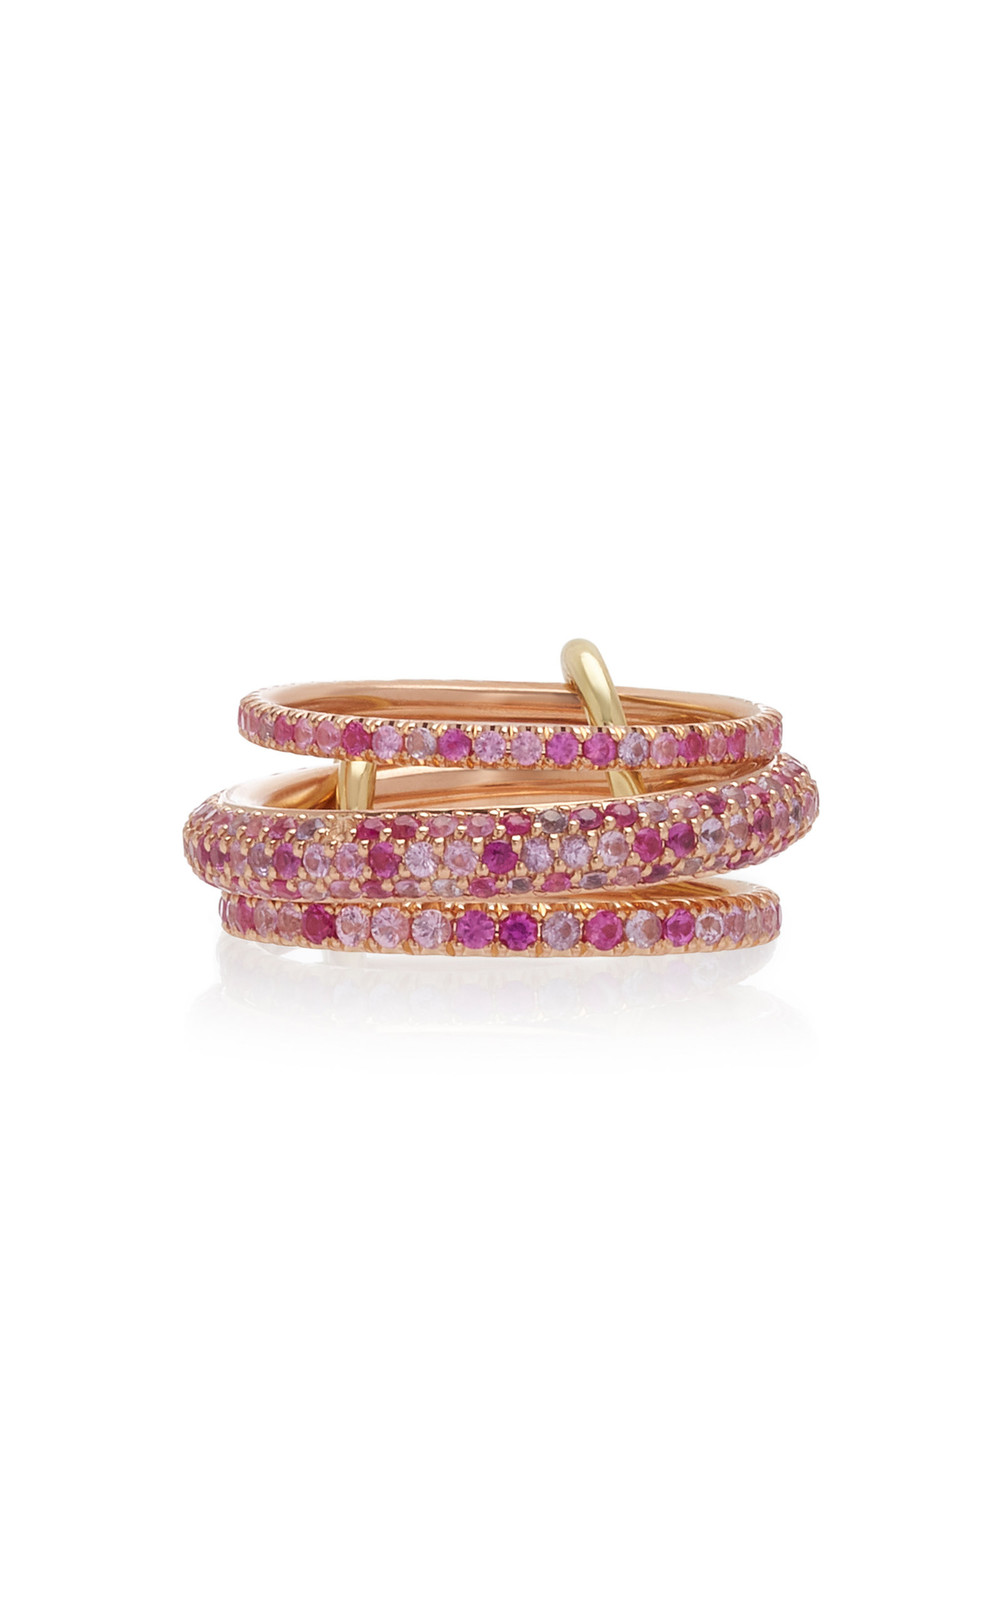 Spinelli Kilcollin Nova Rose Set-Of-Three 18K Rose Gold Sapphire Rings in pink